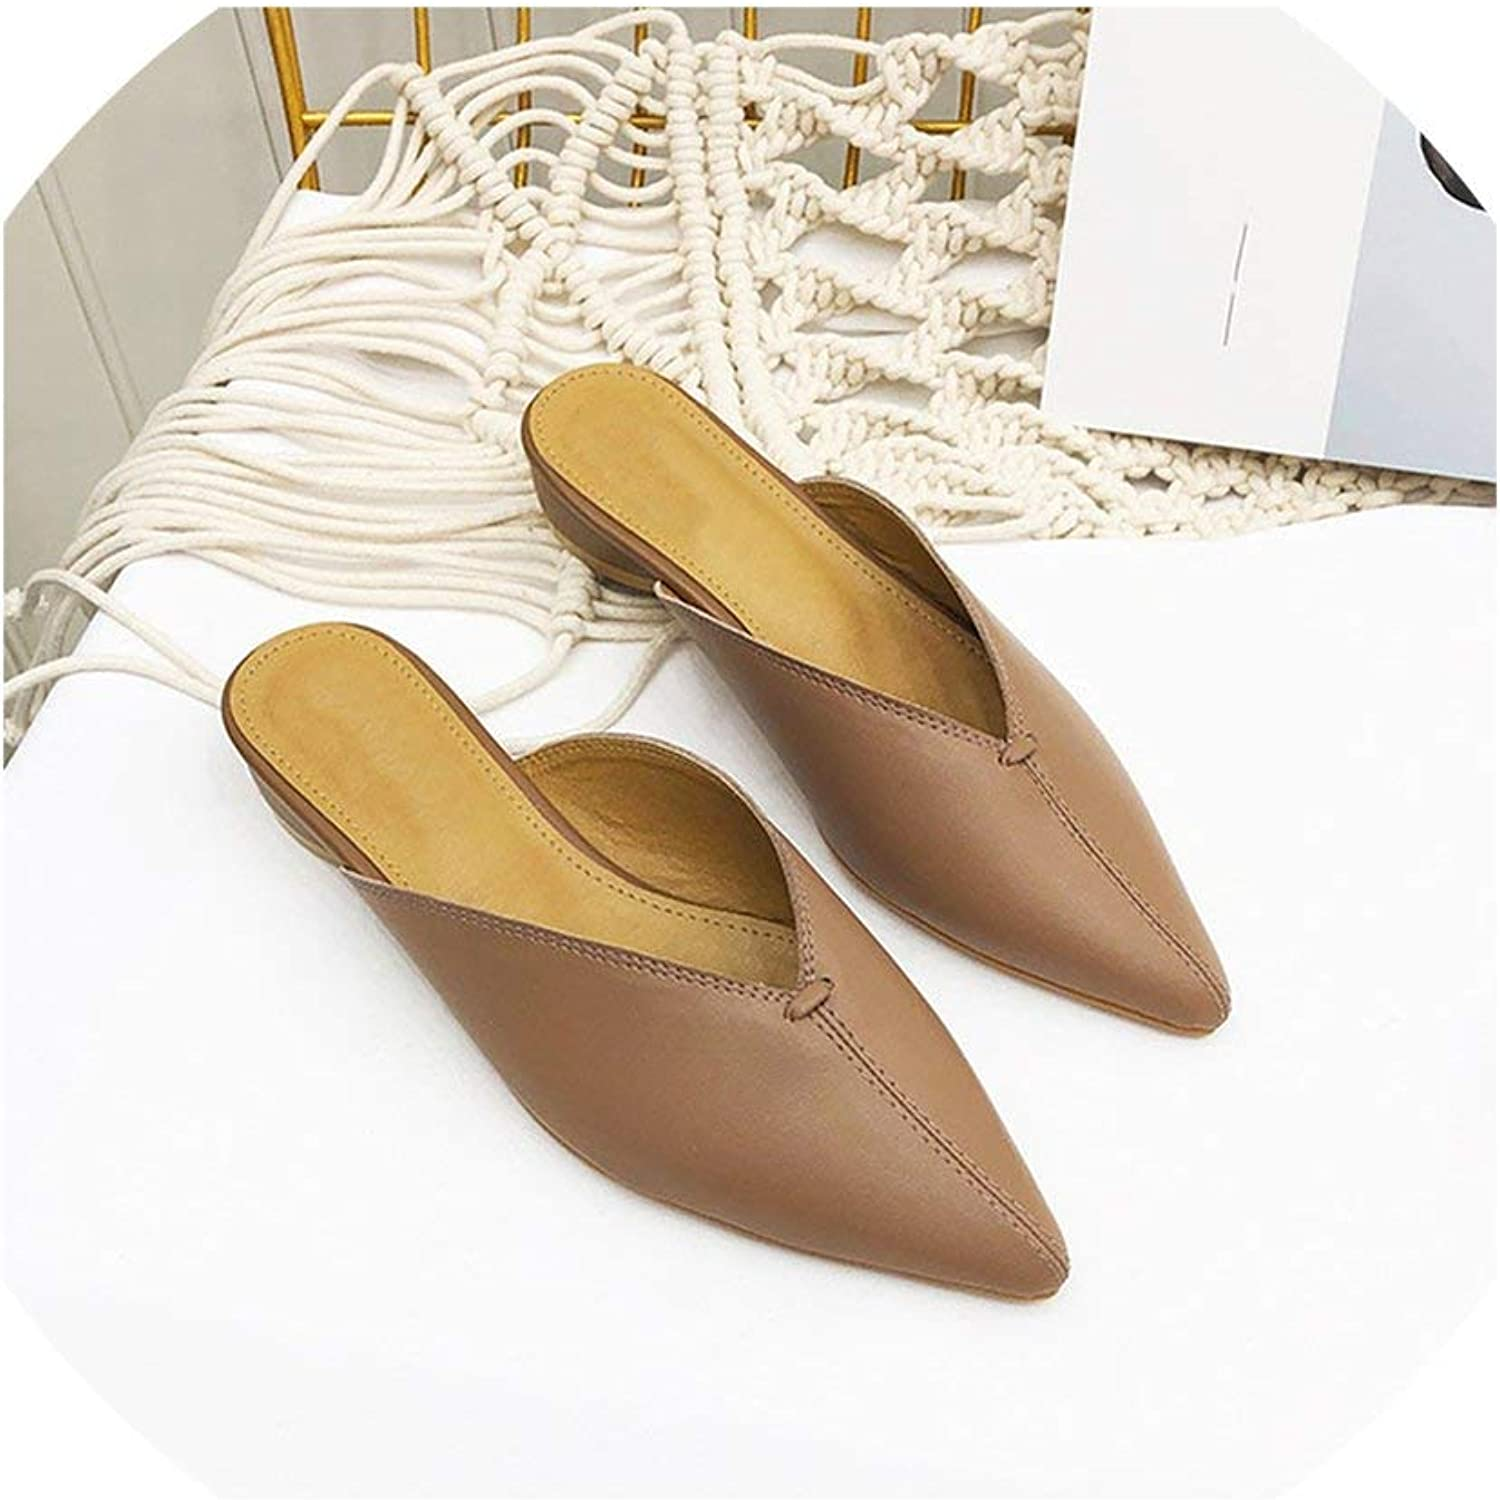 HuaHua-Store Sewing Mules Women Low Heel Slippers Casual Pointed Toe Slides Slip On Loafers Leather shoes